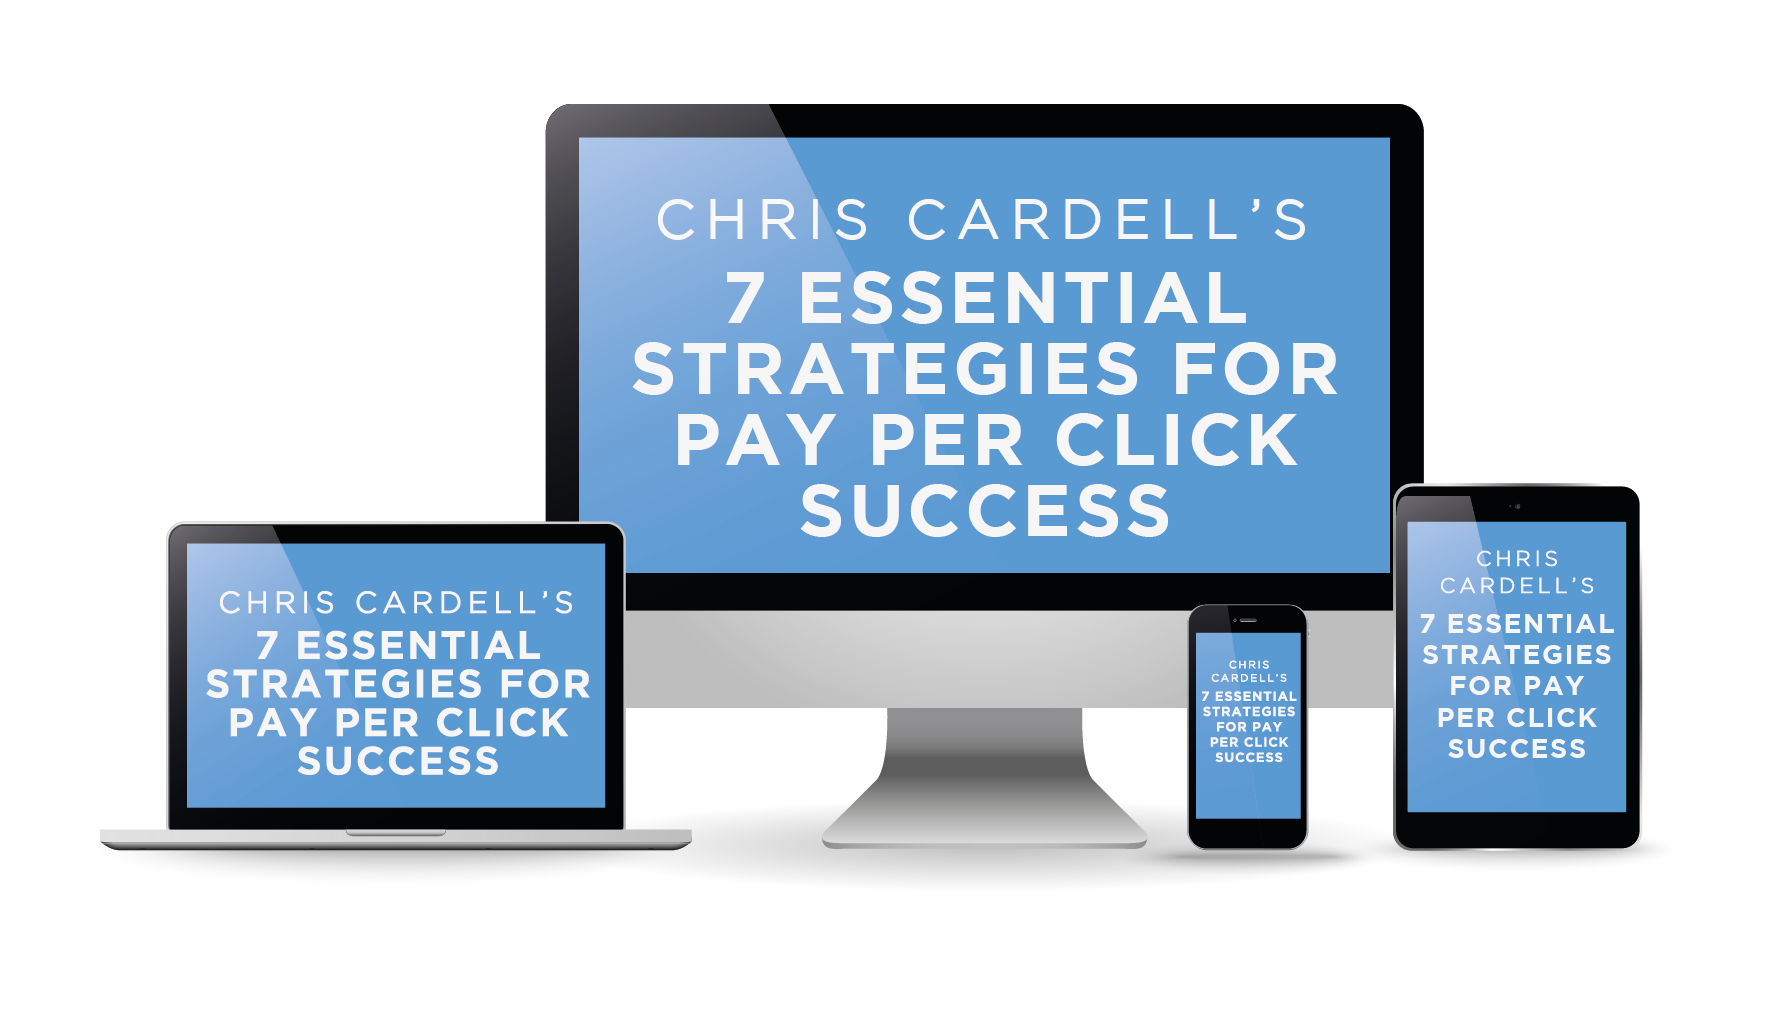 7 Essential Strategies for Pay per Click Success.